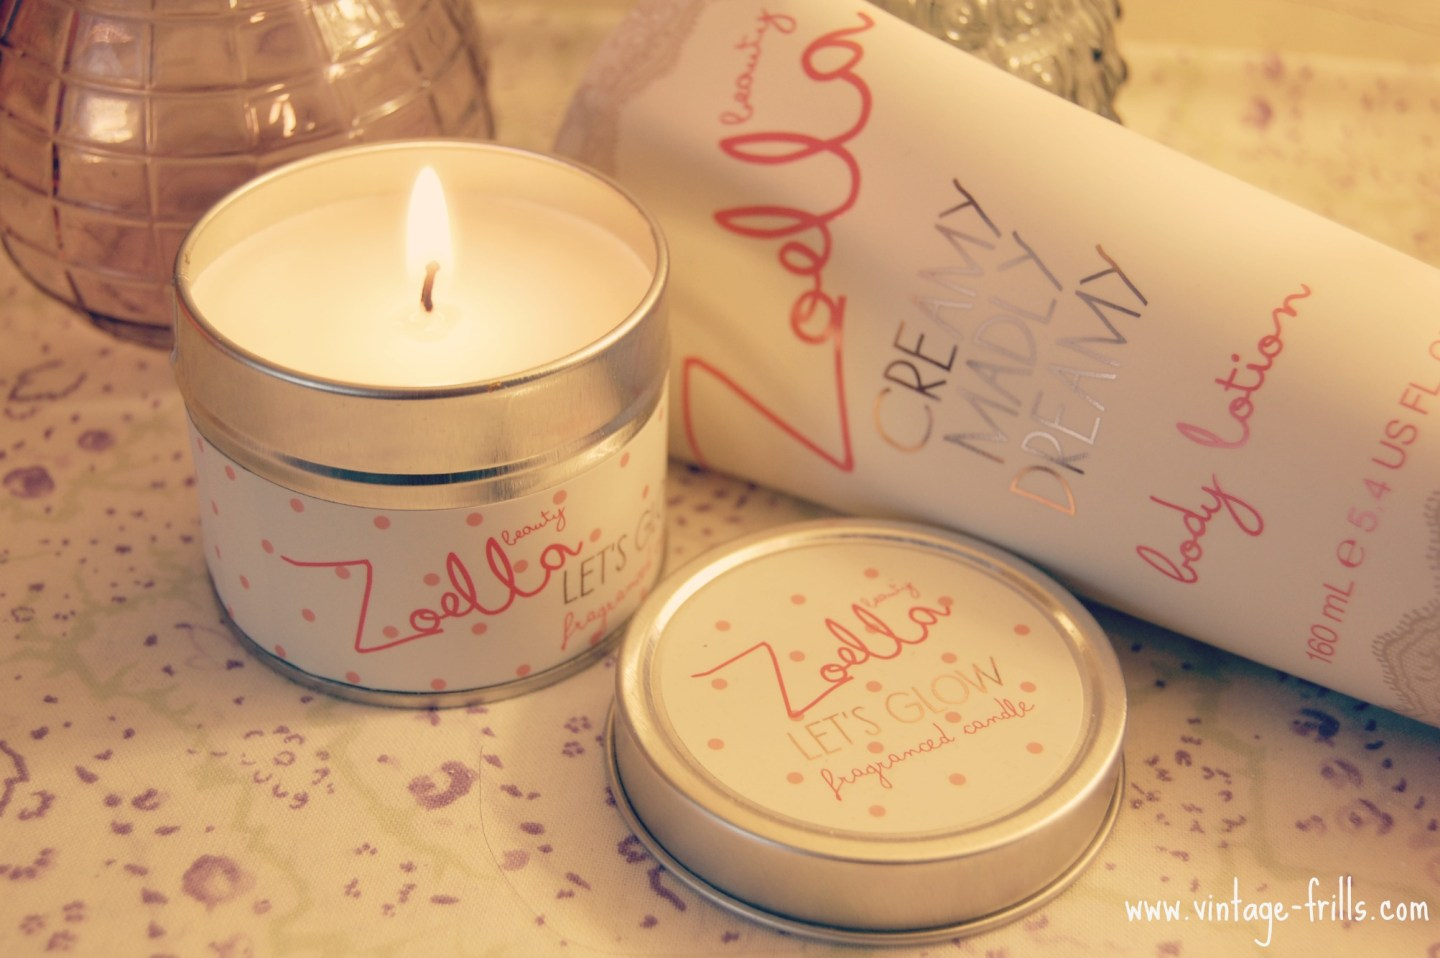 Zoella, Zoella Beauty, Zoella Candle, Let's Glow